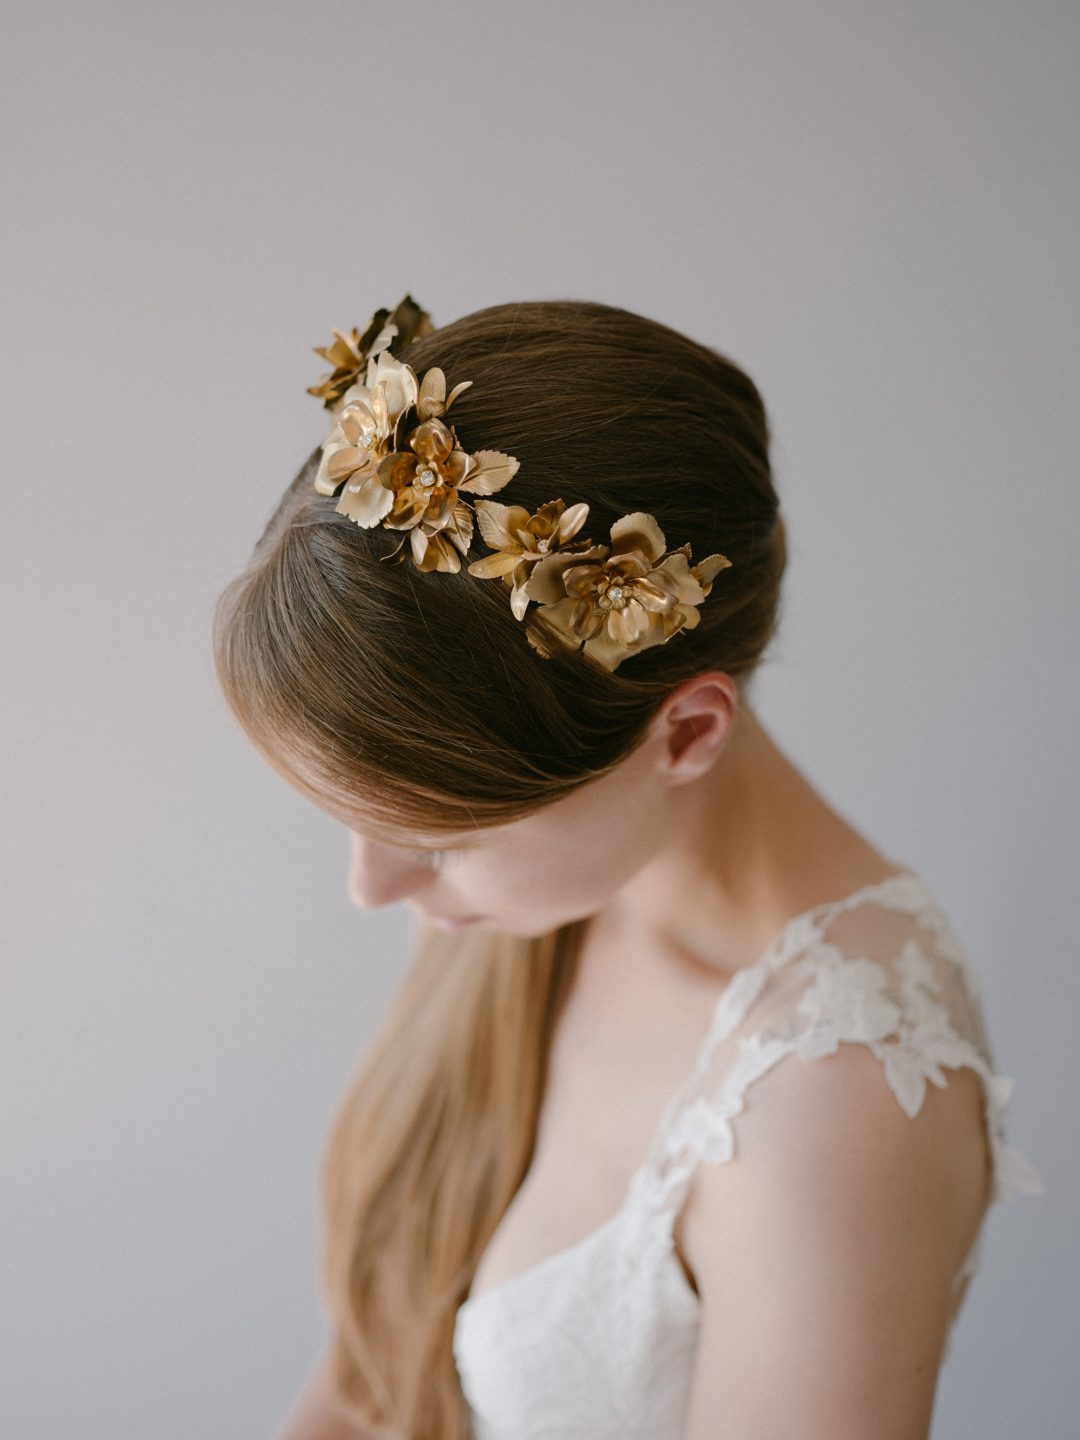 Style 913 - Brass Floral Bridal Crown - by SIBO Designs Couture www.sibodesigns.com